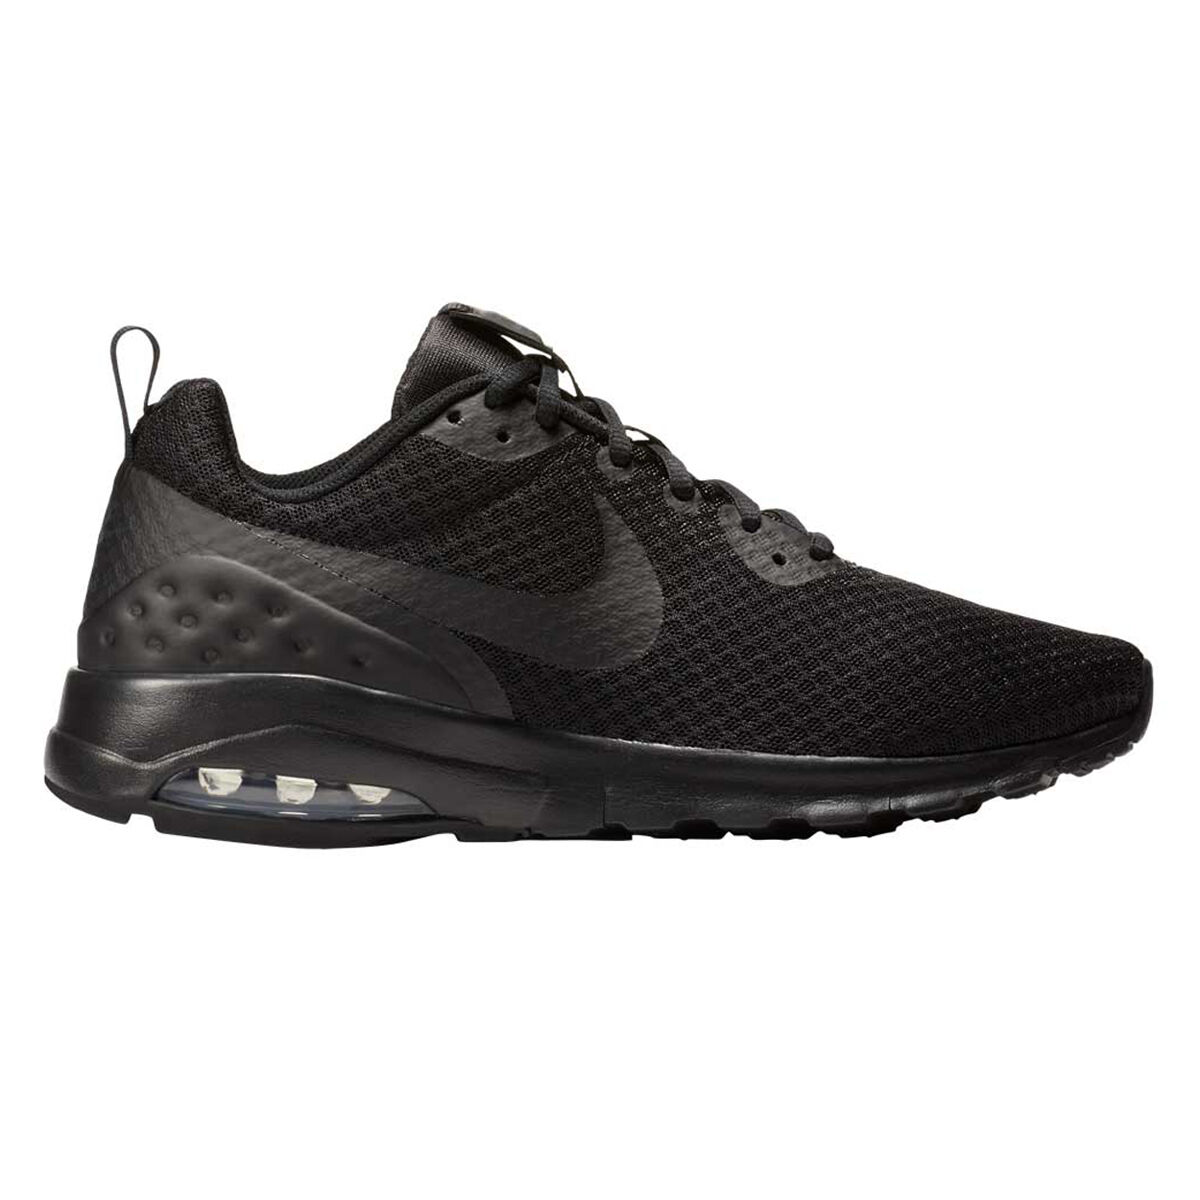 Mens Nike Sport Max Air Motion Rebel Low Casual Shoes RrqIry4